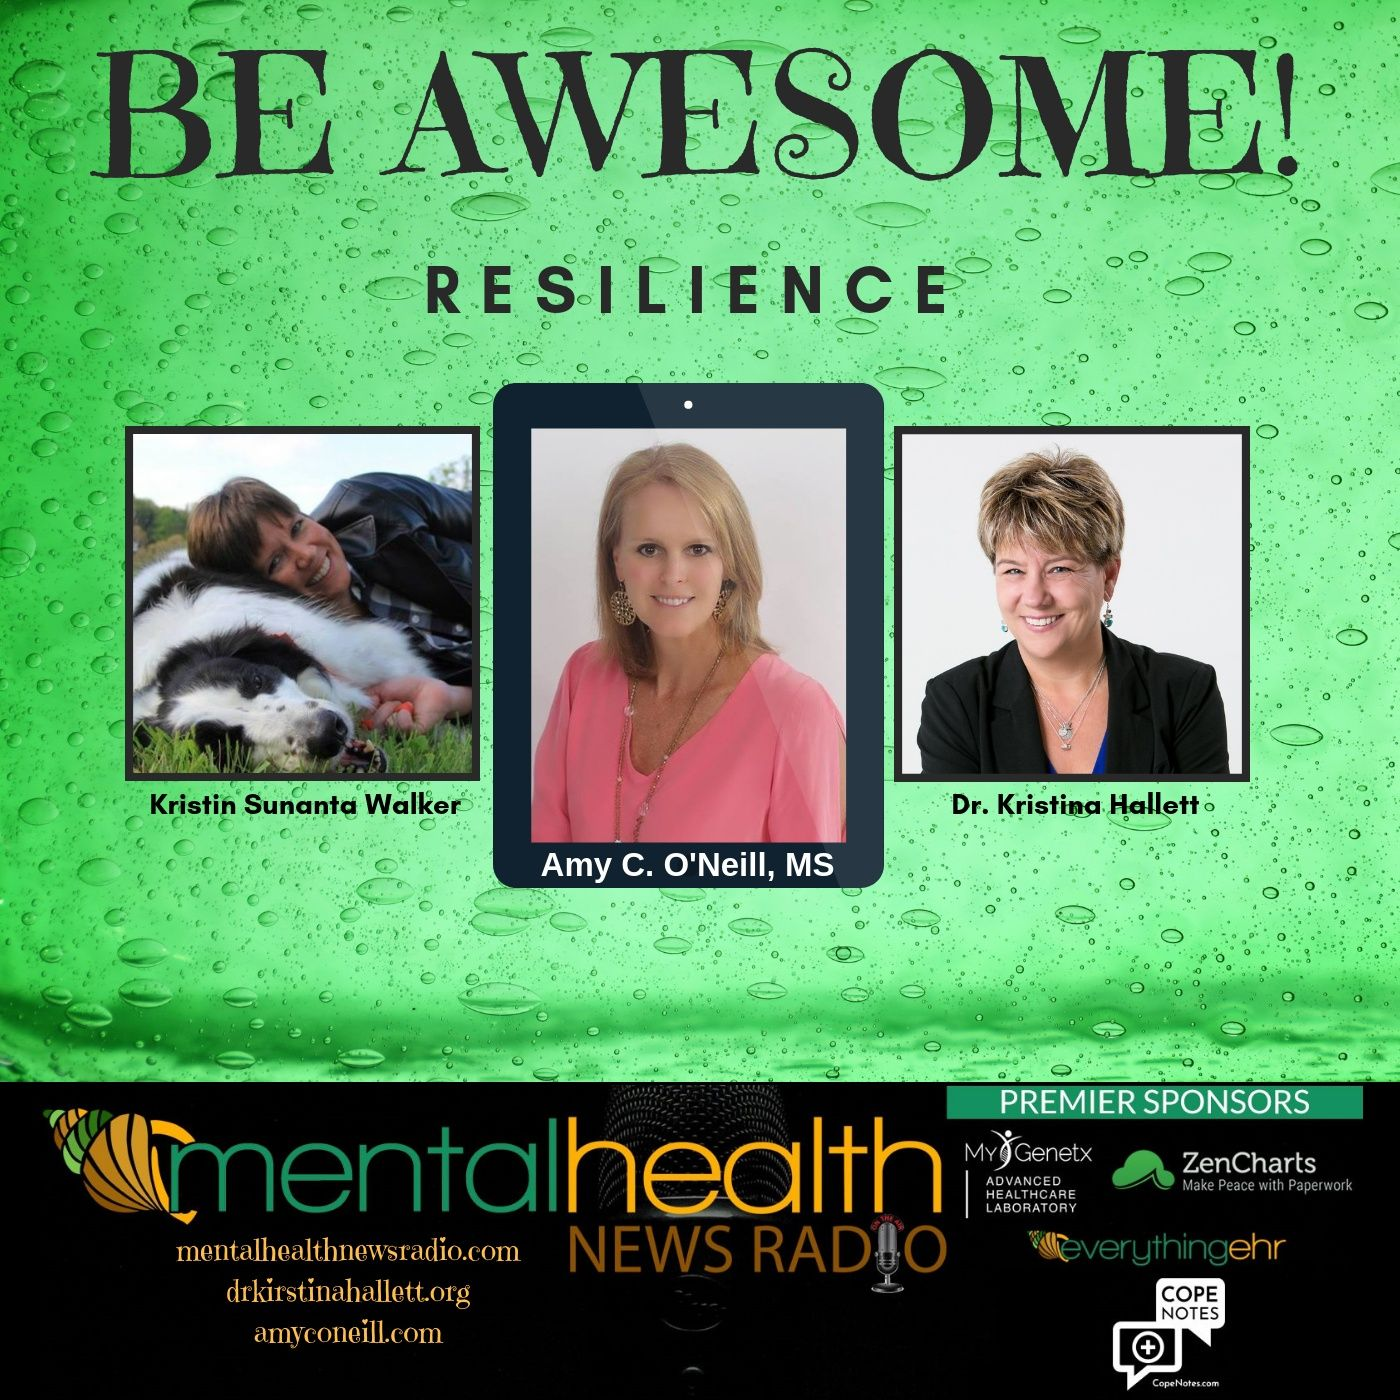 Mental Health News Radio - Be Awesome: Resilience with Amy C. O'Neill, MS